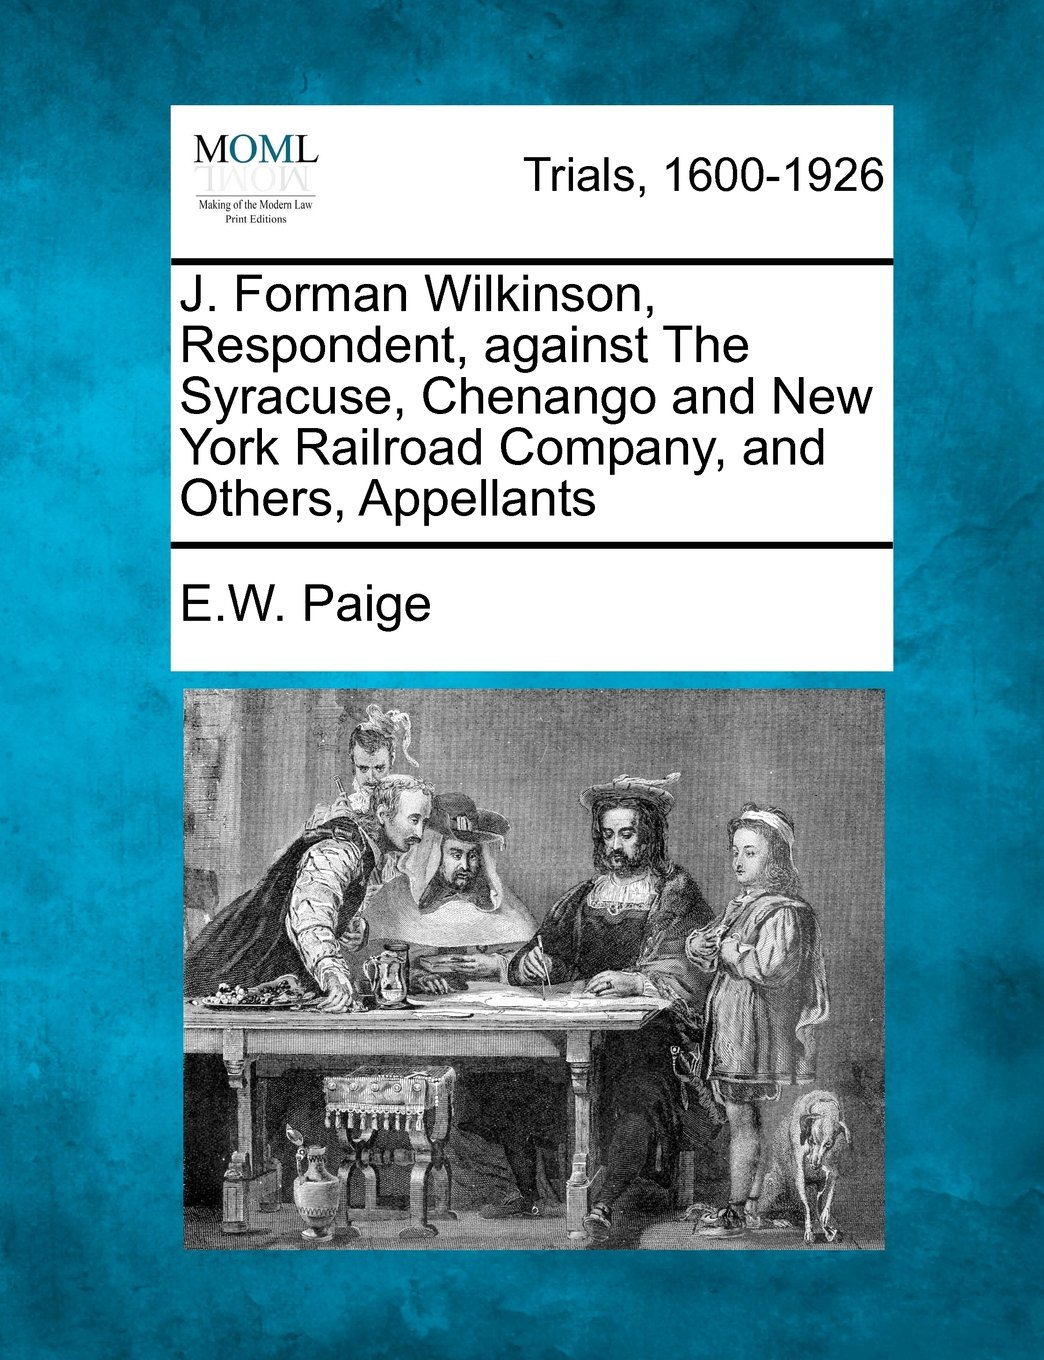 J. Forman Wilkinson, Respondent, against The Syracuse, Chenango and New York Railroad Company, and Others, Appellants PDF